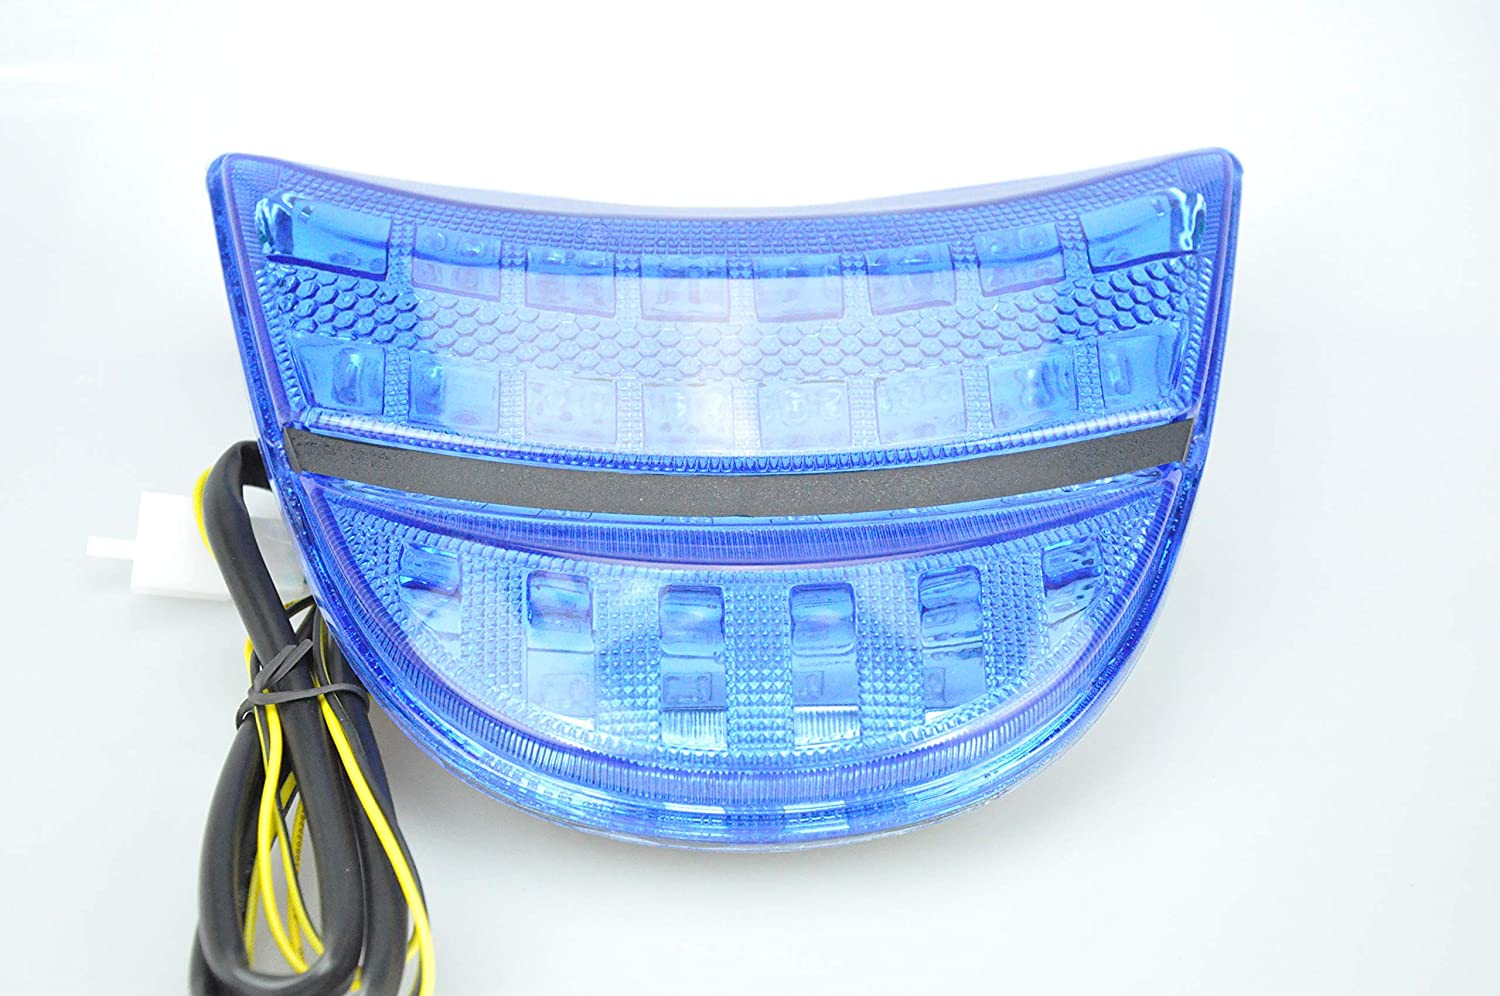 Bright Motorcycle LED Tail Light with Turn Signals for Honda 02-03 CBR900RR,CBR954RR Fireblade,Blue